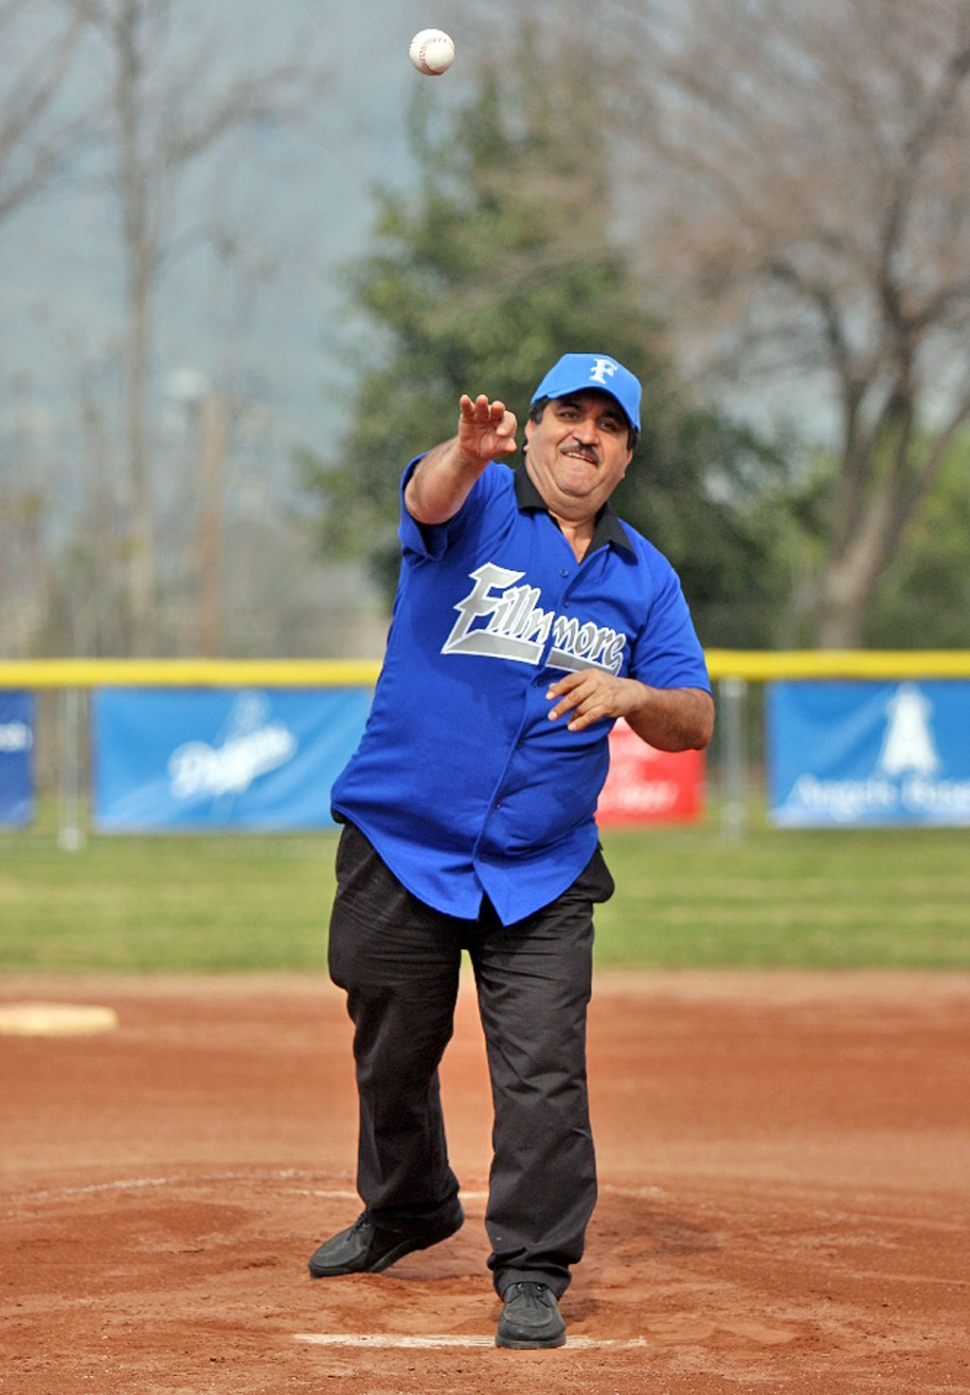 Chuy Ortiz owner of El Pescador restaurant threw out the first pitch during Fillmore Little League's opening ceremonies last Saturday.